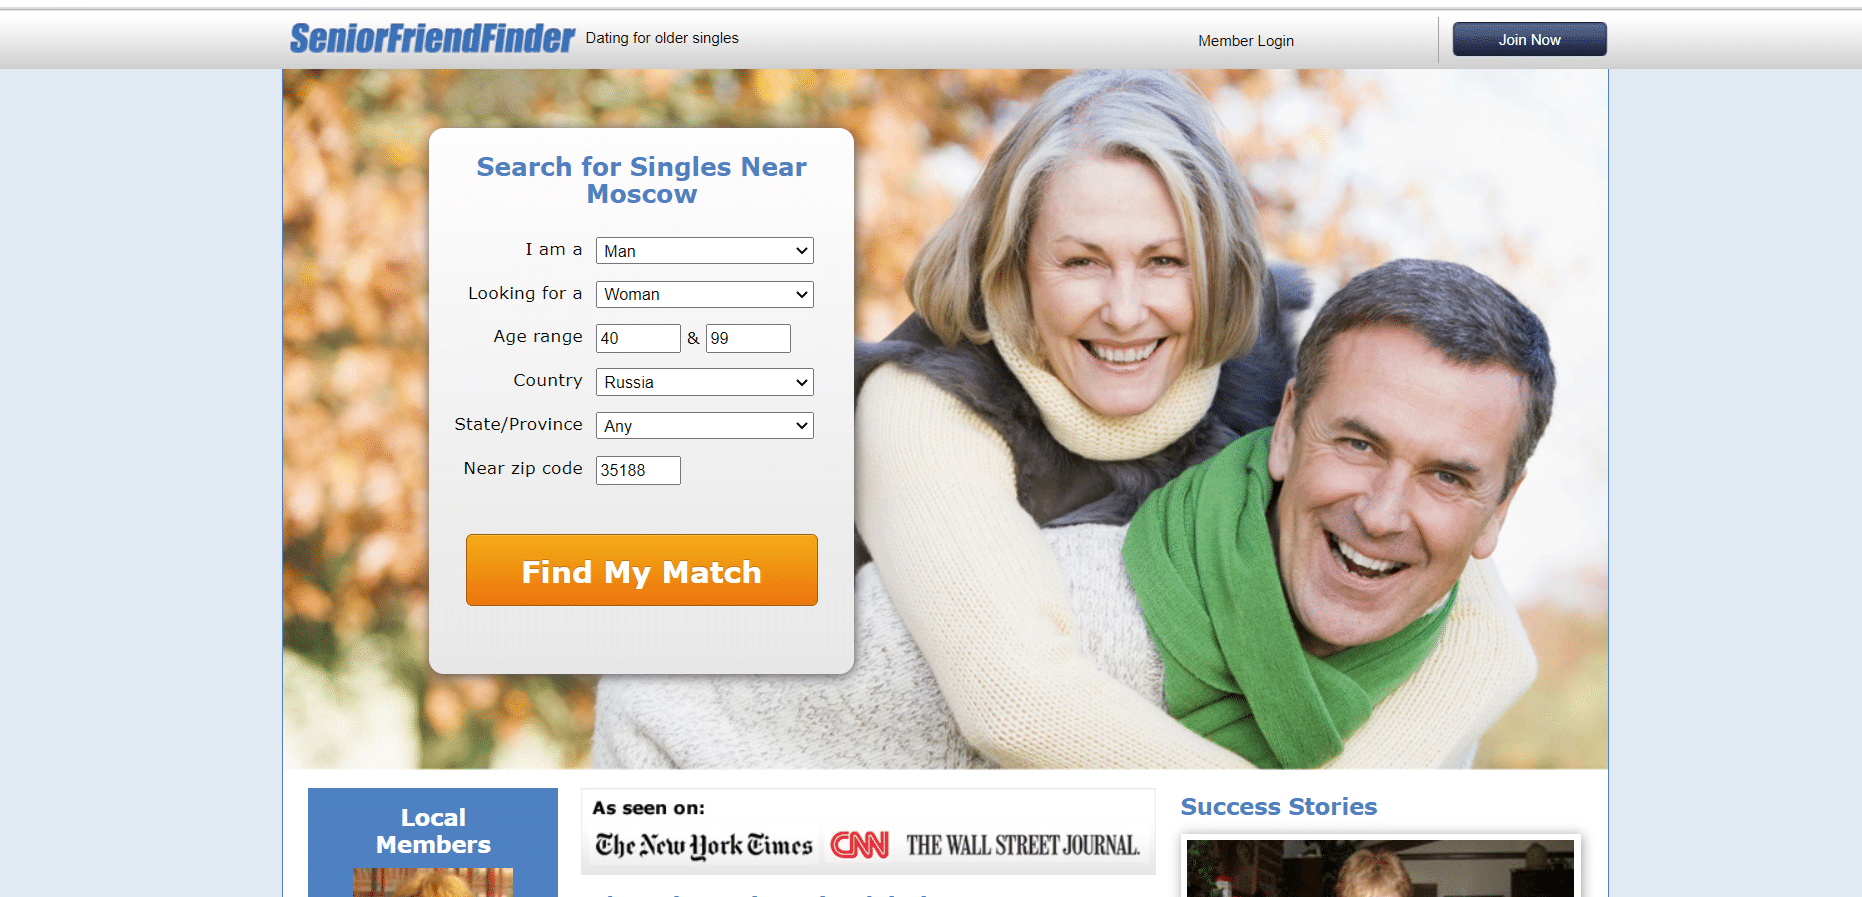 2021 02 28 1 e1614522350191 - Best Senior Dating Sites: Love Knows No Age